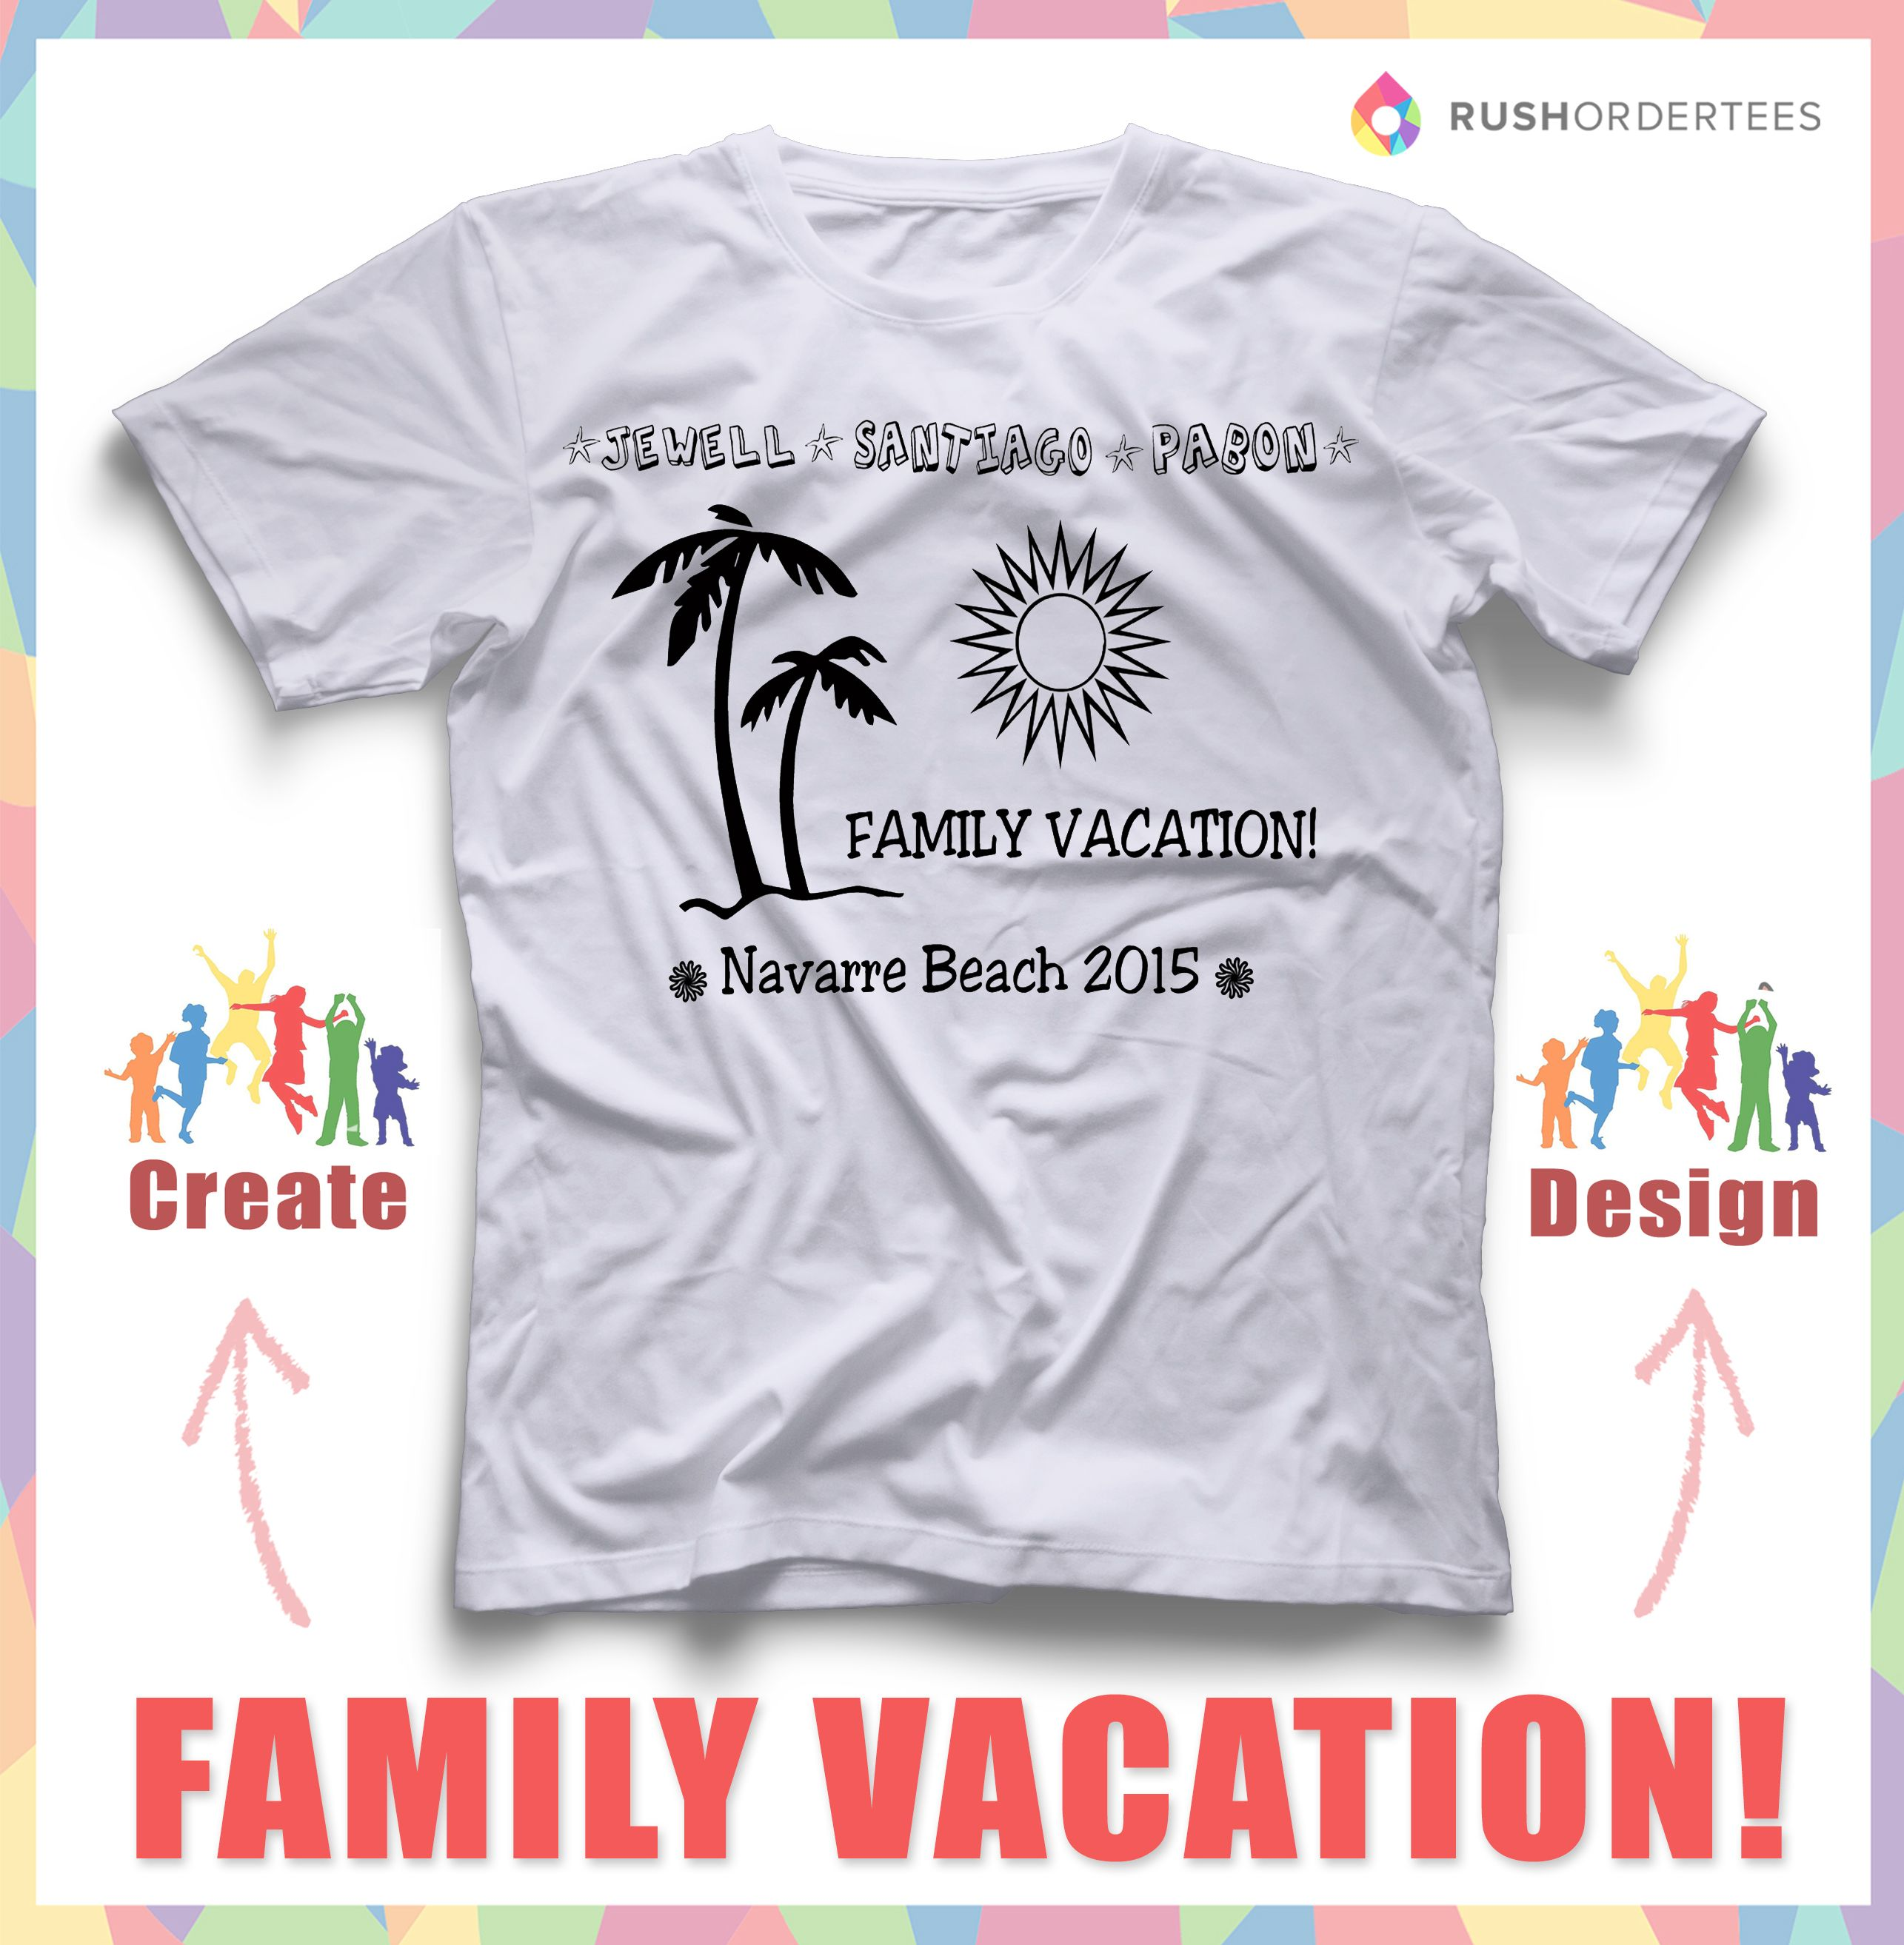 Family vacation custom t-shirt design idea's! Create your own ...